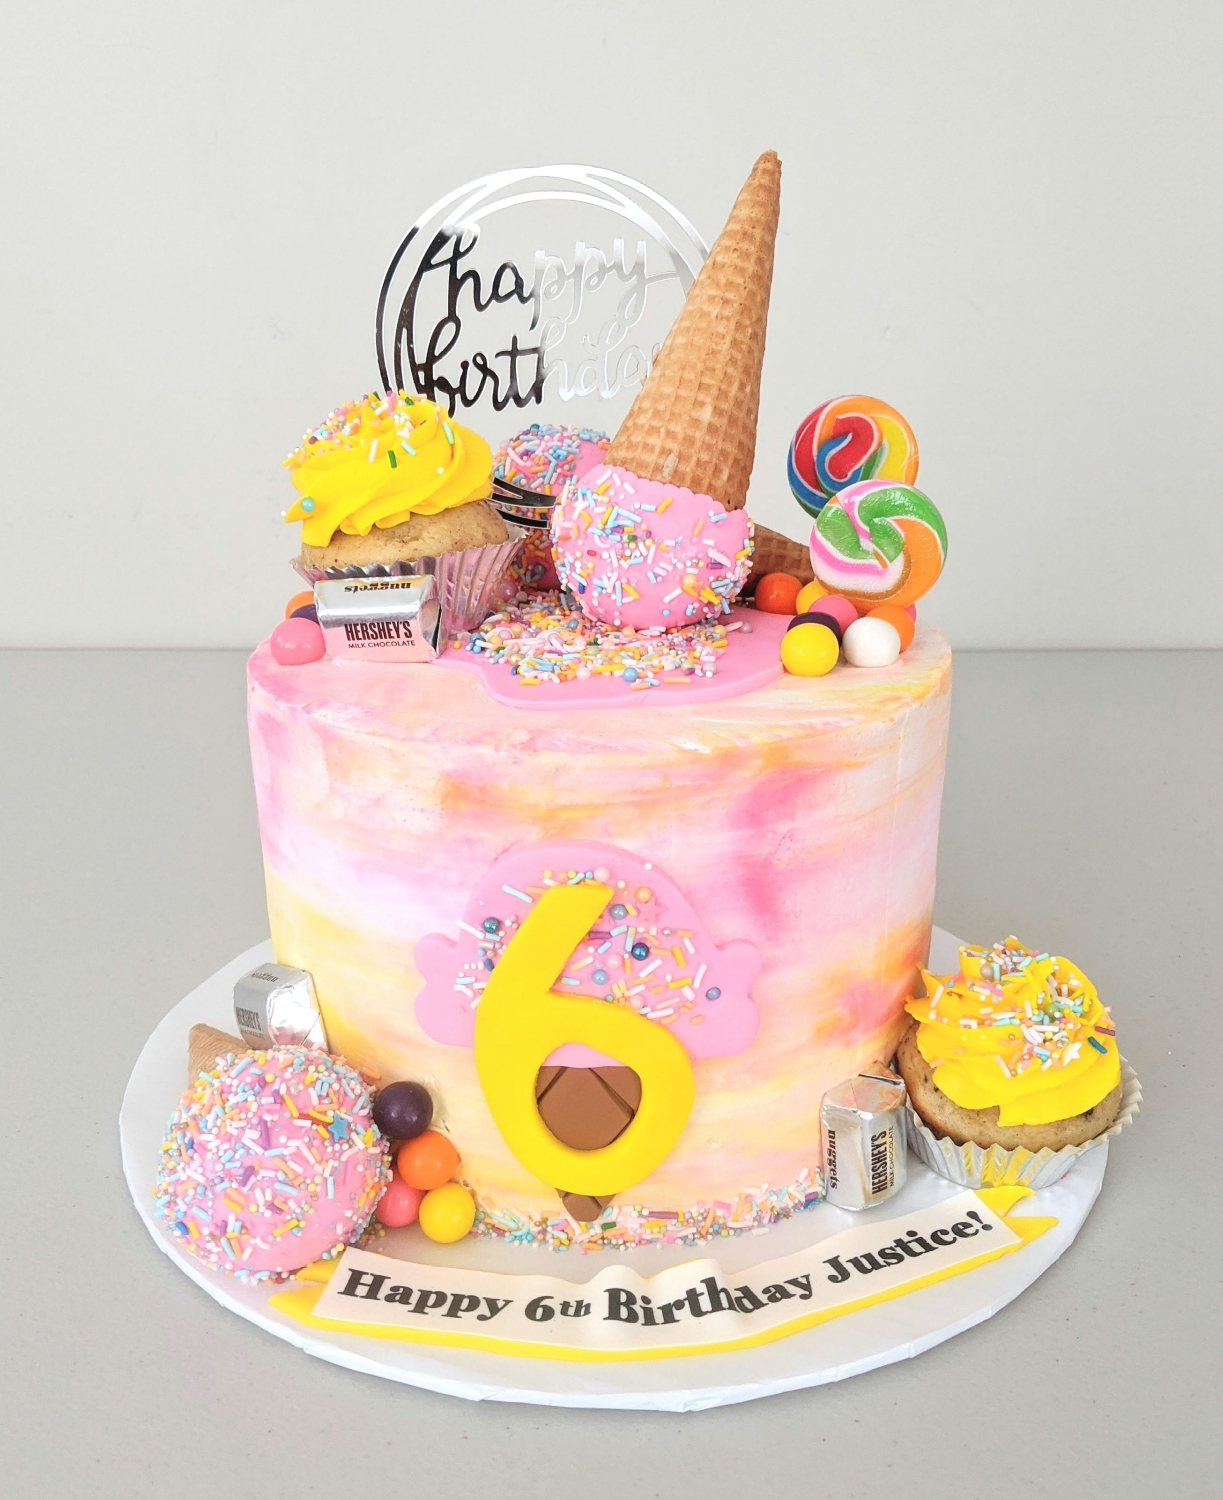 Ice Cream Cone themed Birthday Cake